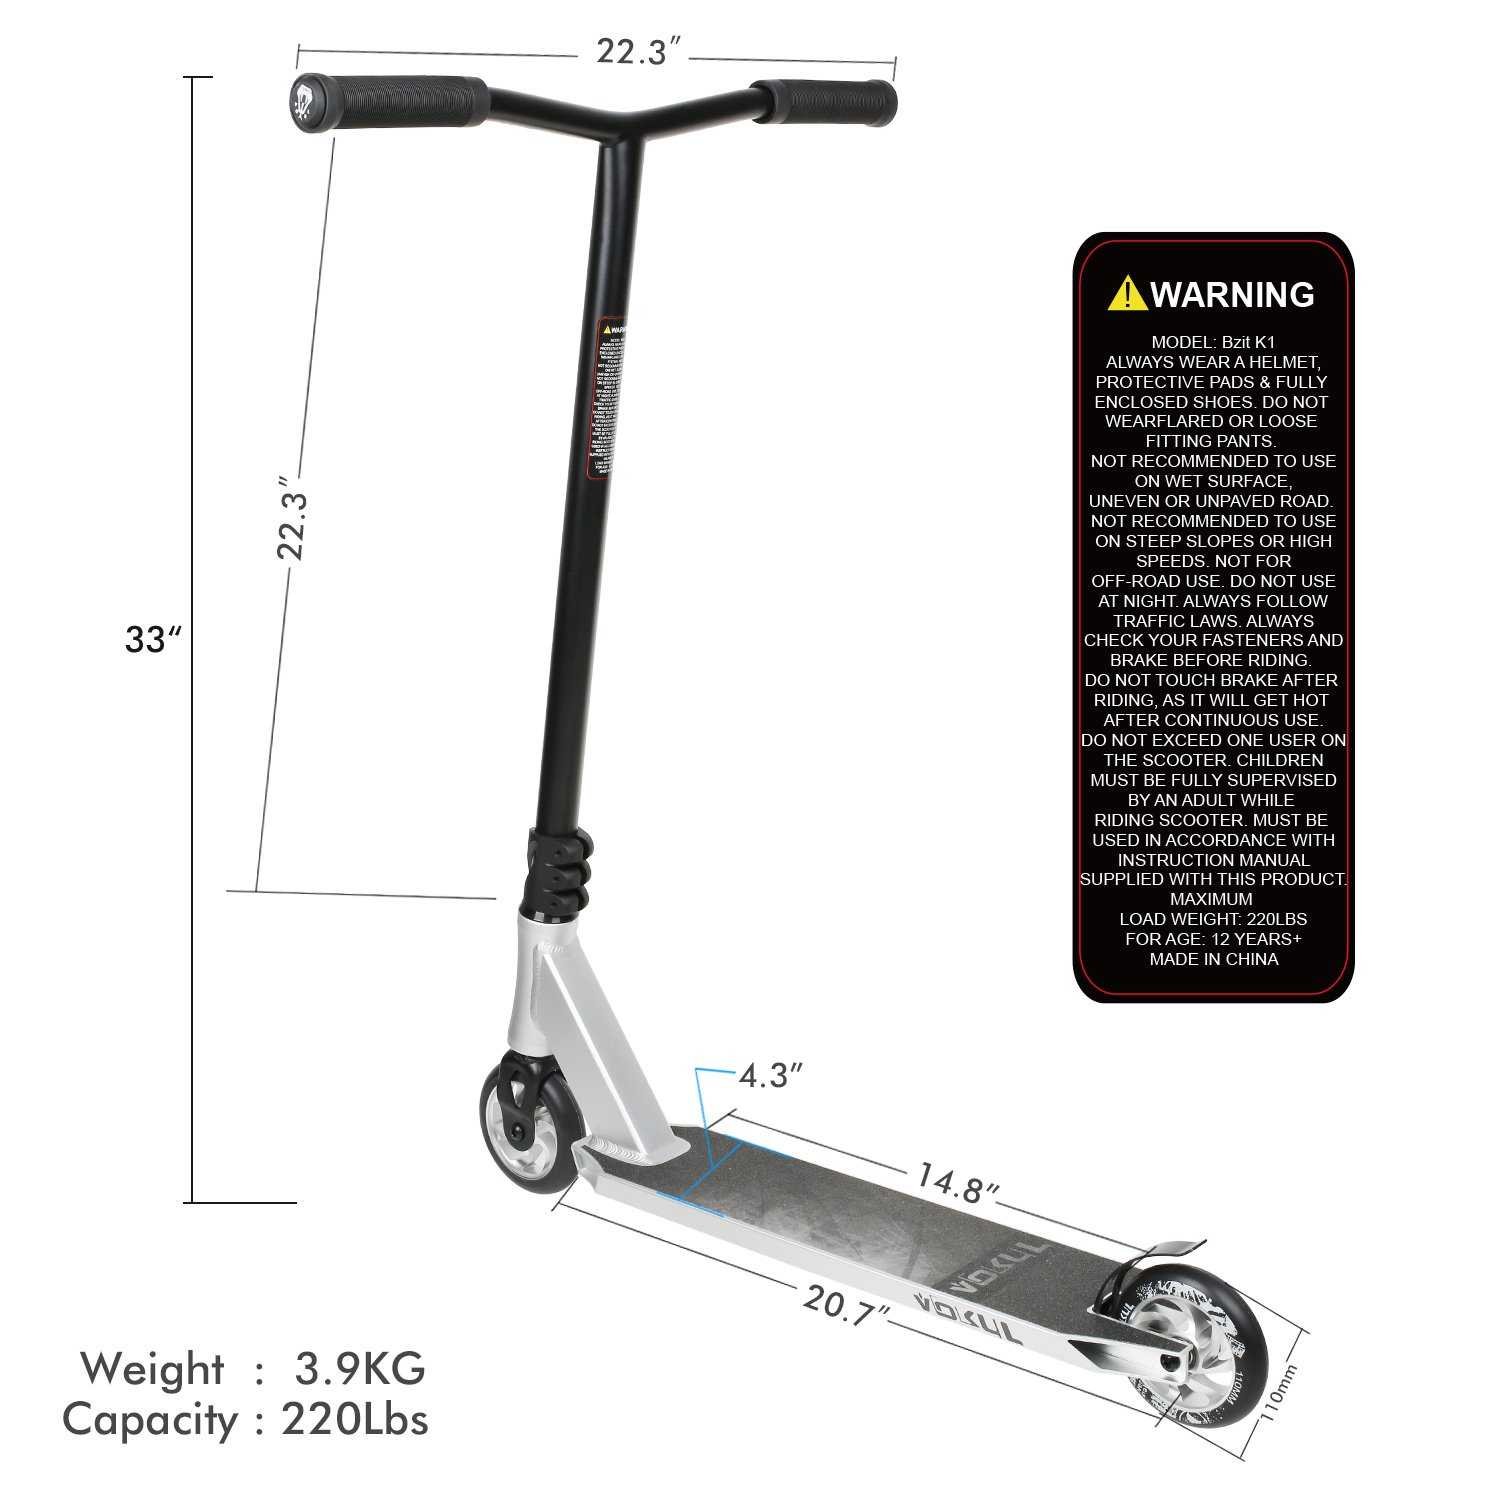 VOKUL K1 Complete Pro Scooter for Kids Boys Girls Teens Adults Up 7 Years - Freestyle Tricks Pro Stunt Scooter with 110mm Metal Wheels - High Performance Gift for Skatepark Street Tricks by VOKUL (Image #5)